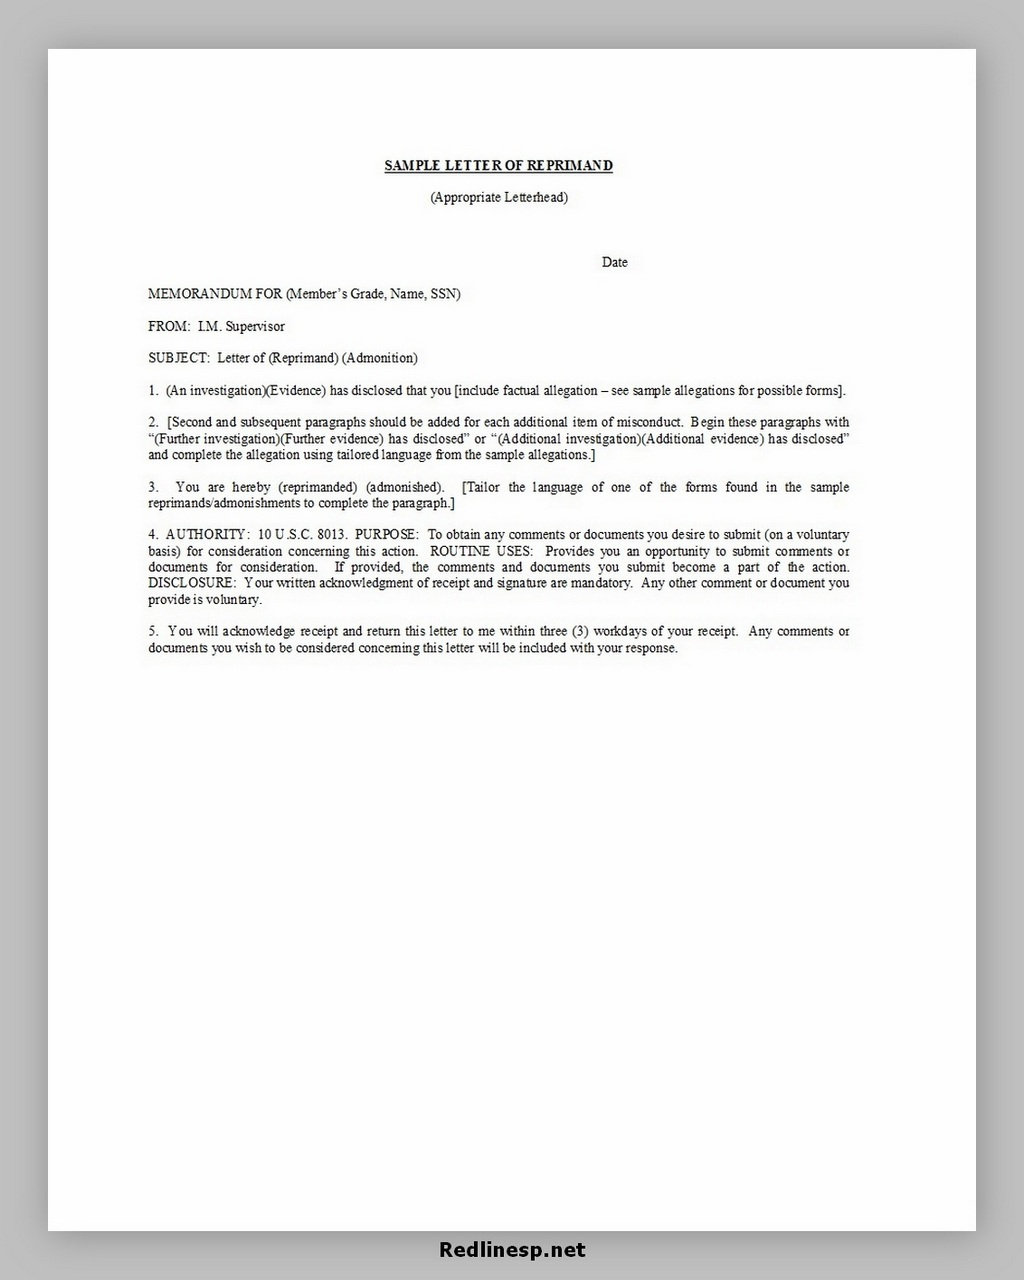 letter of reprimand 38